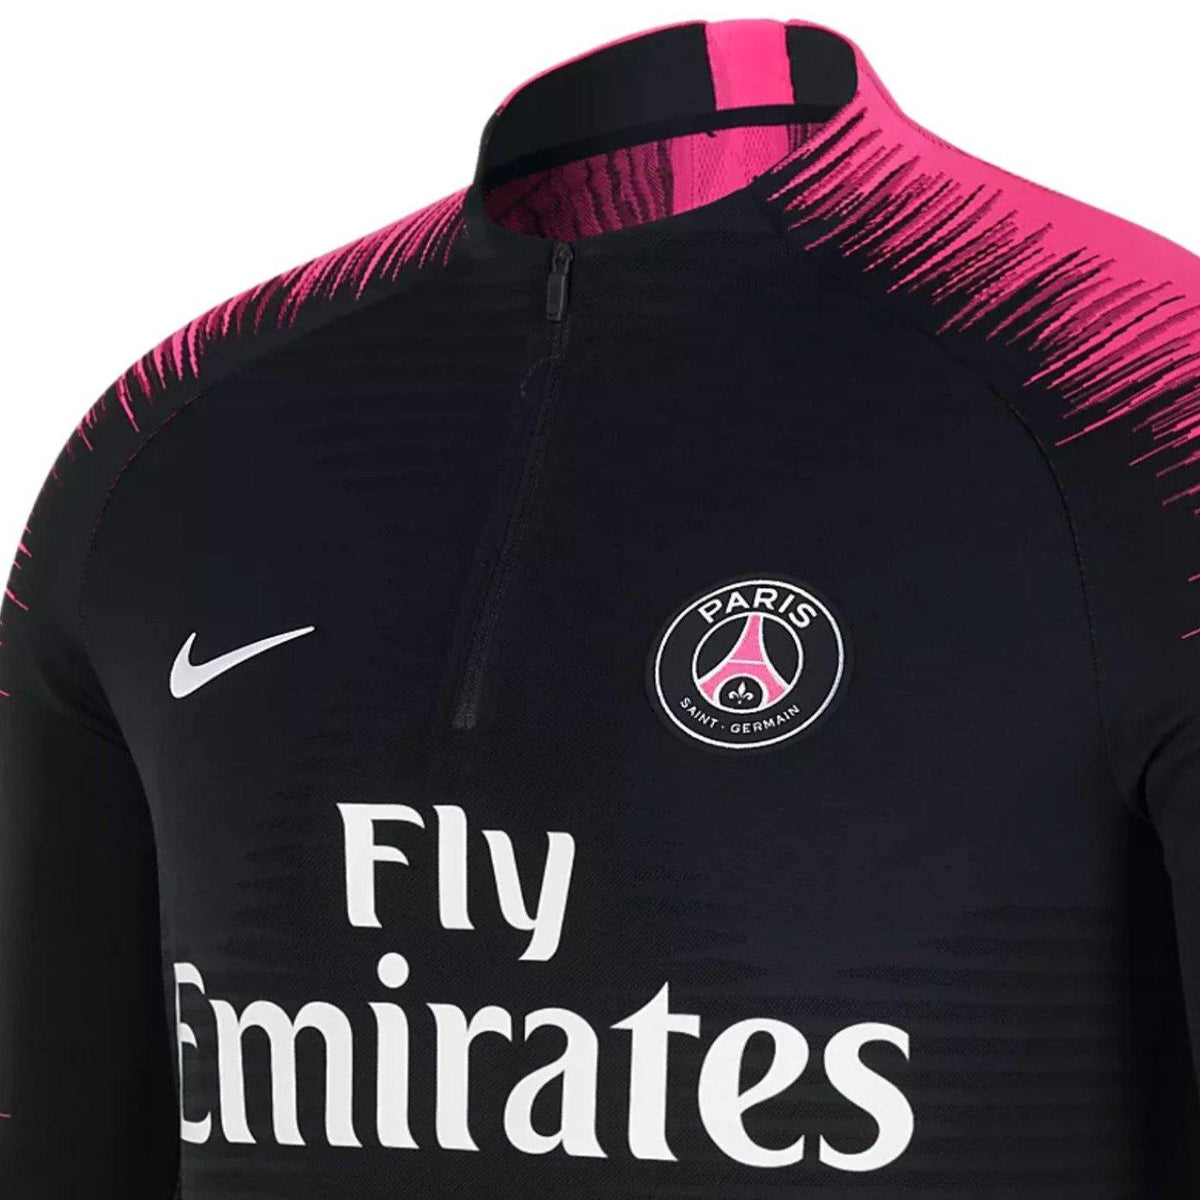 sneakers for cheap dc839 c5a90 Paris Saint Germain Vaporknit Technical Soccer Tracksuit 2018 19 - Nik –  SoccerTracksuits.com